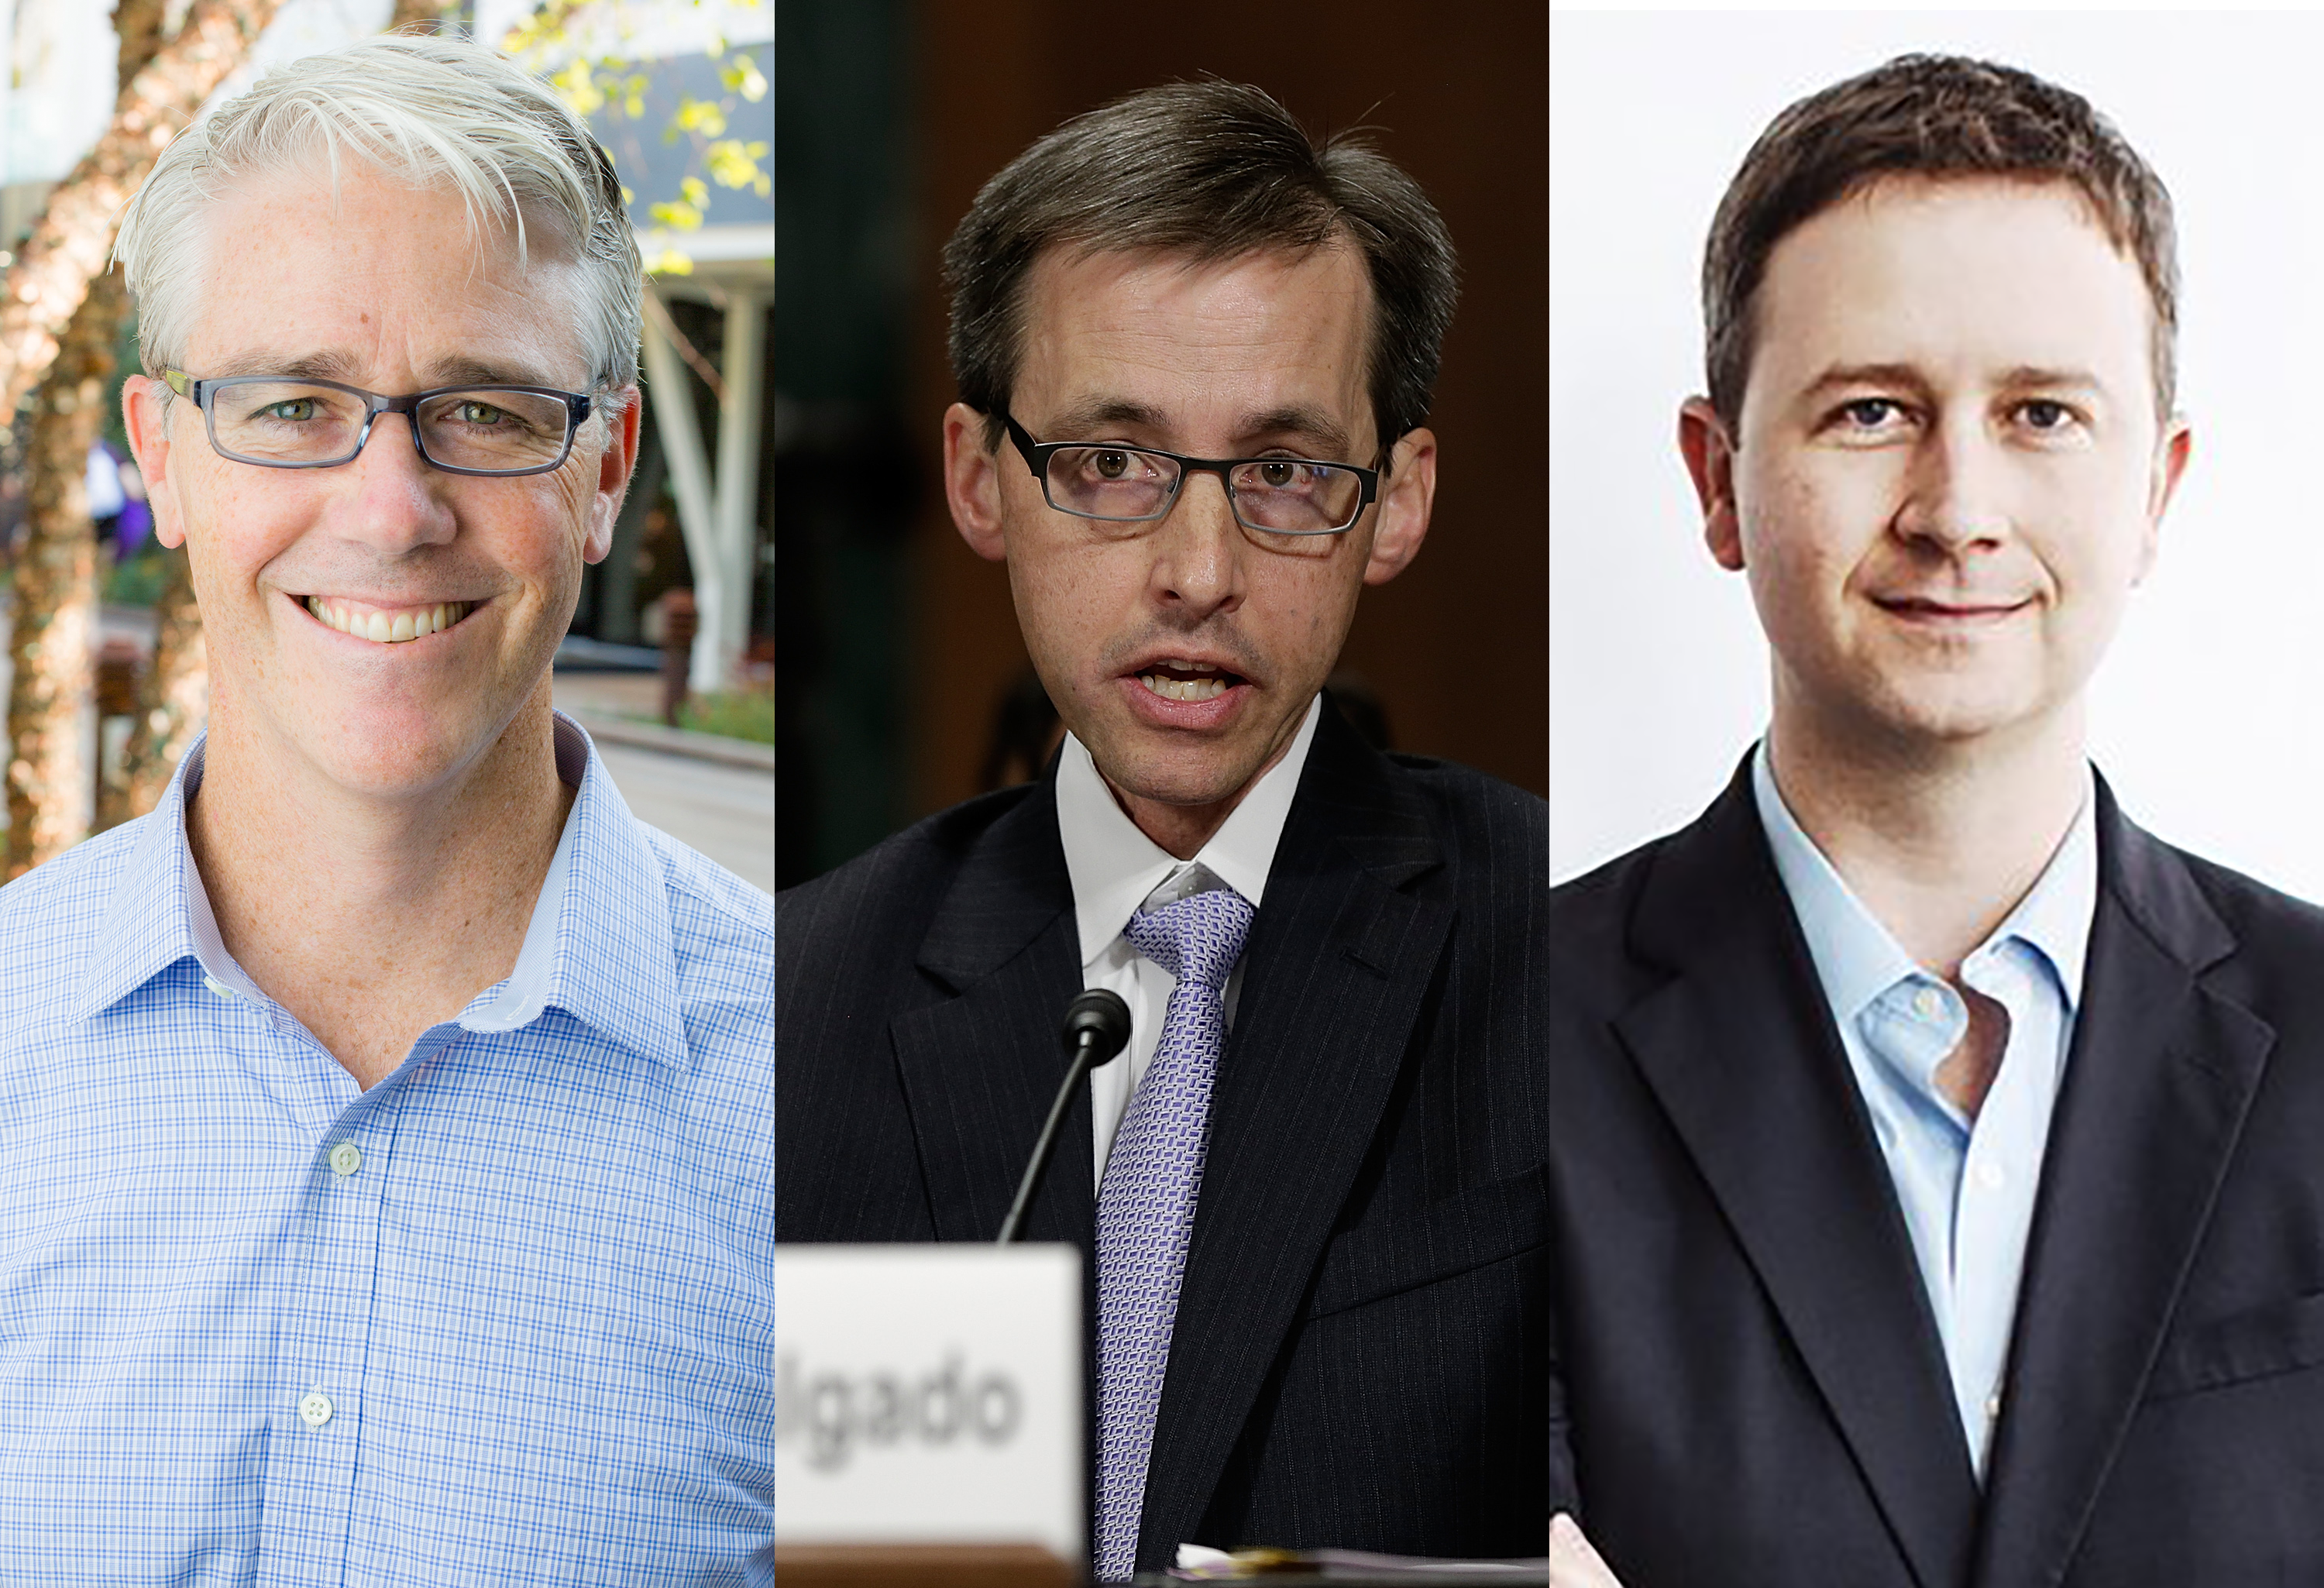 Headshots of three senior executives from Facebook, Google and Twitter are shown. Facebook's Colin Stretch, Google's Rich Salgado and Twitter's Sean Edgett are shown.